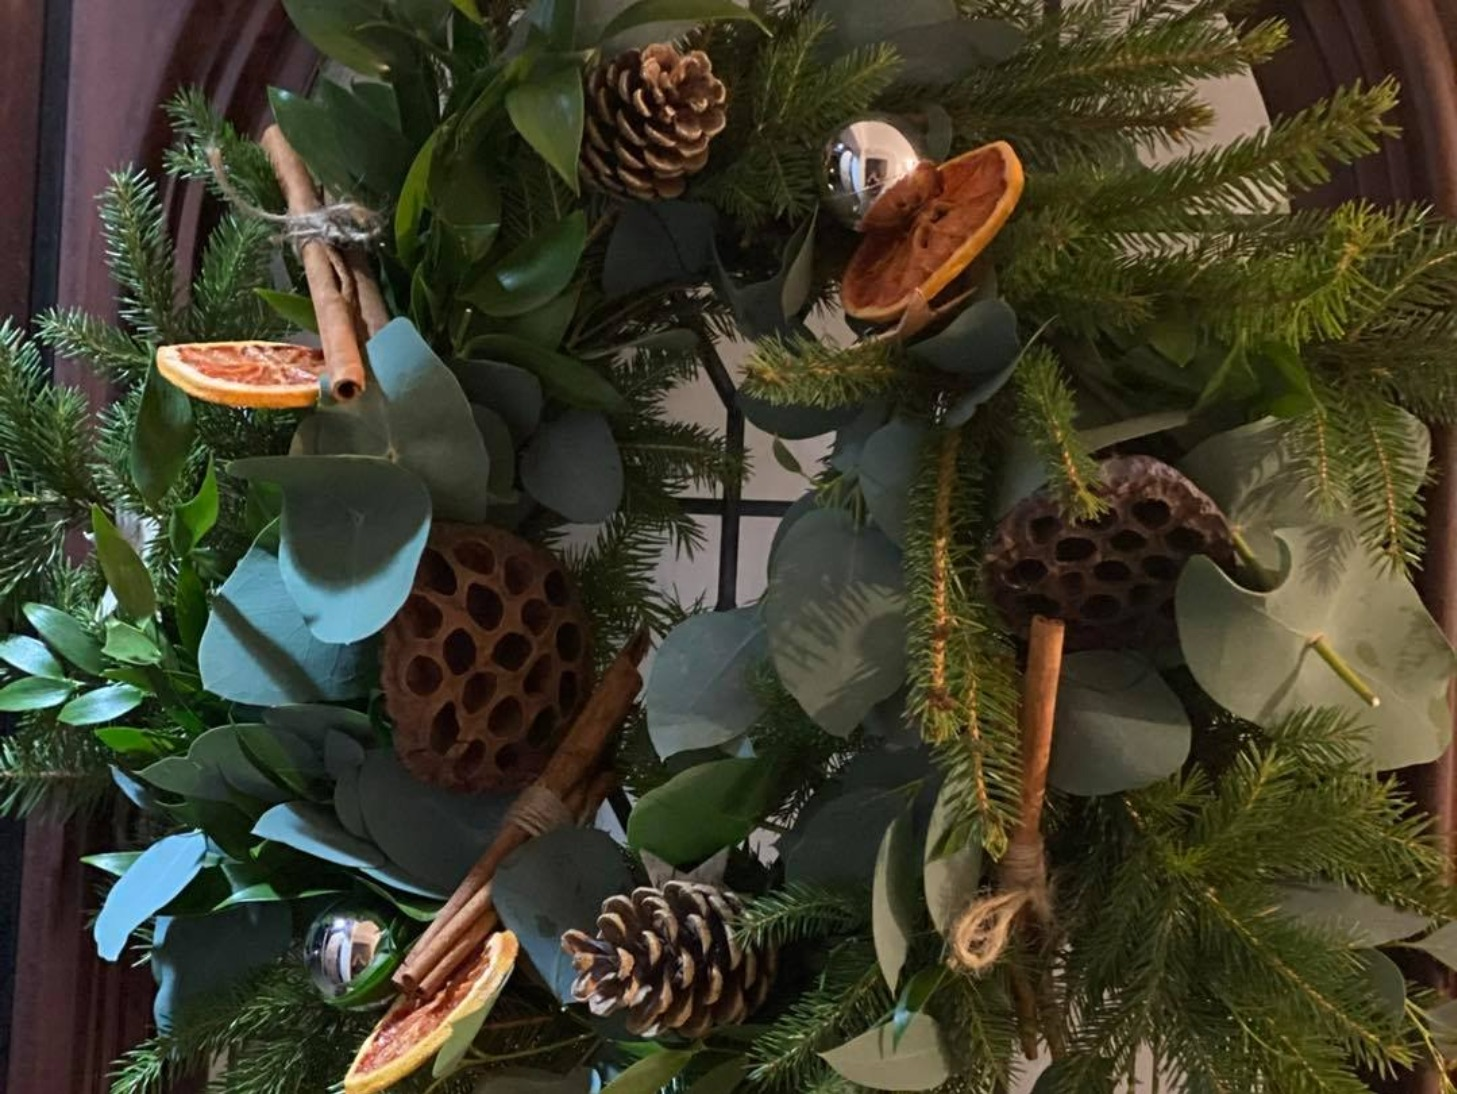 Festive Afternoon Tea and Wreath Making (Monday 13th December Workshop Room 1: 10am-1pm) DEPOSIT